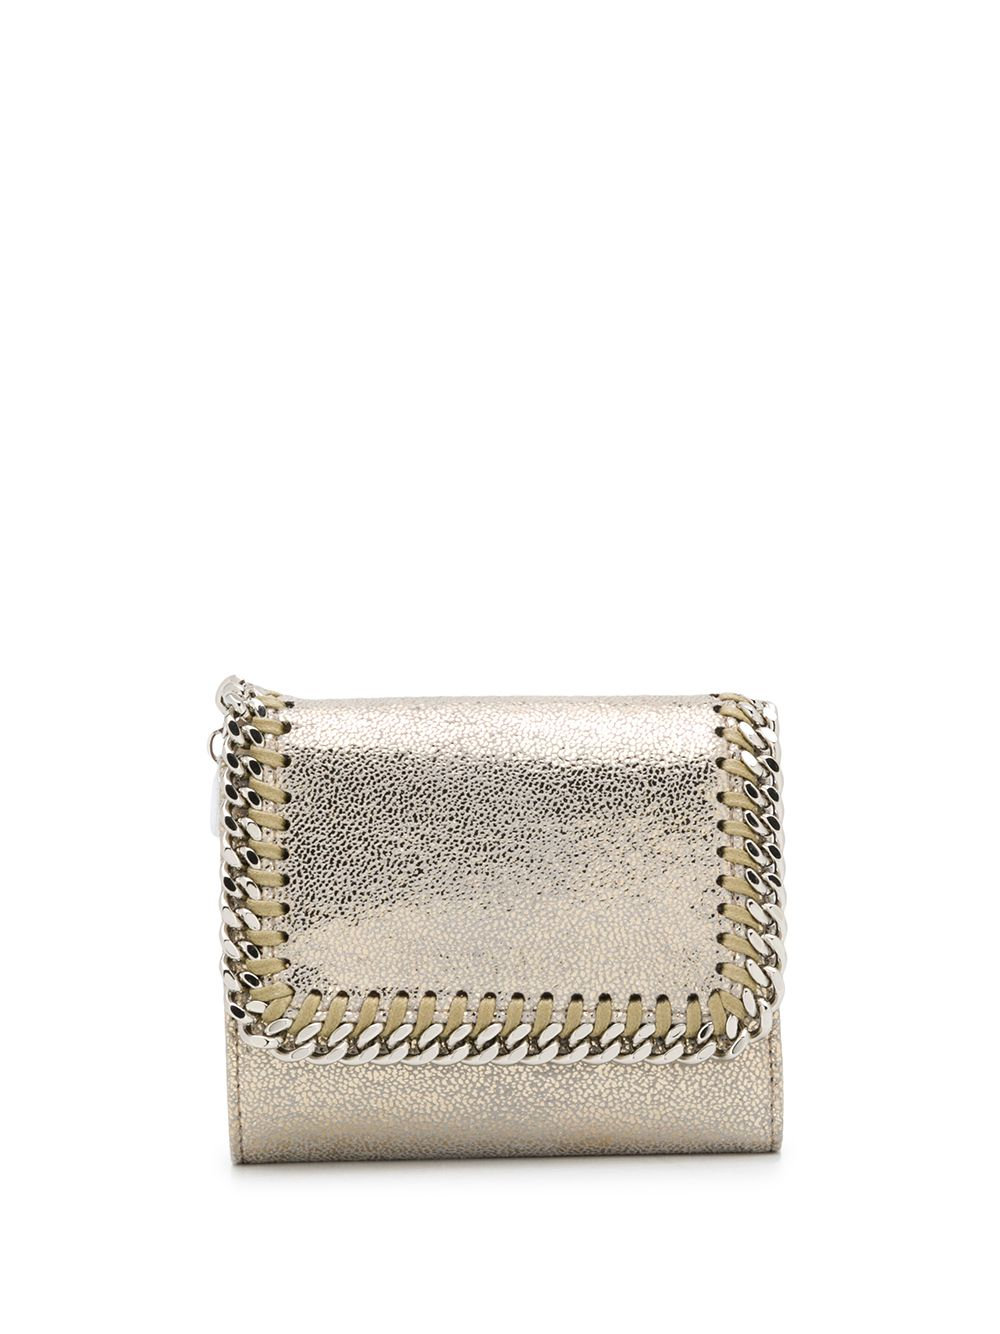 Gold-tone Falabella squared metallic wallet with gold chain STELLA MC CARTNEY |  | 431000-W8745T702